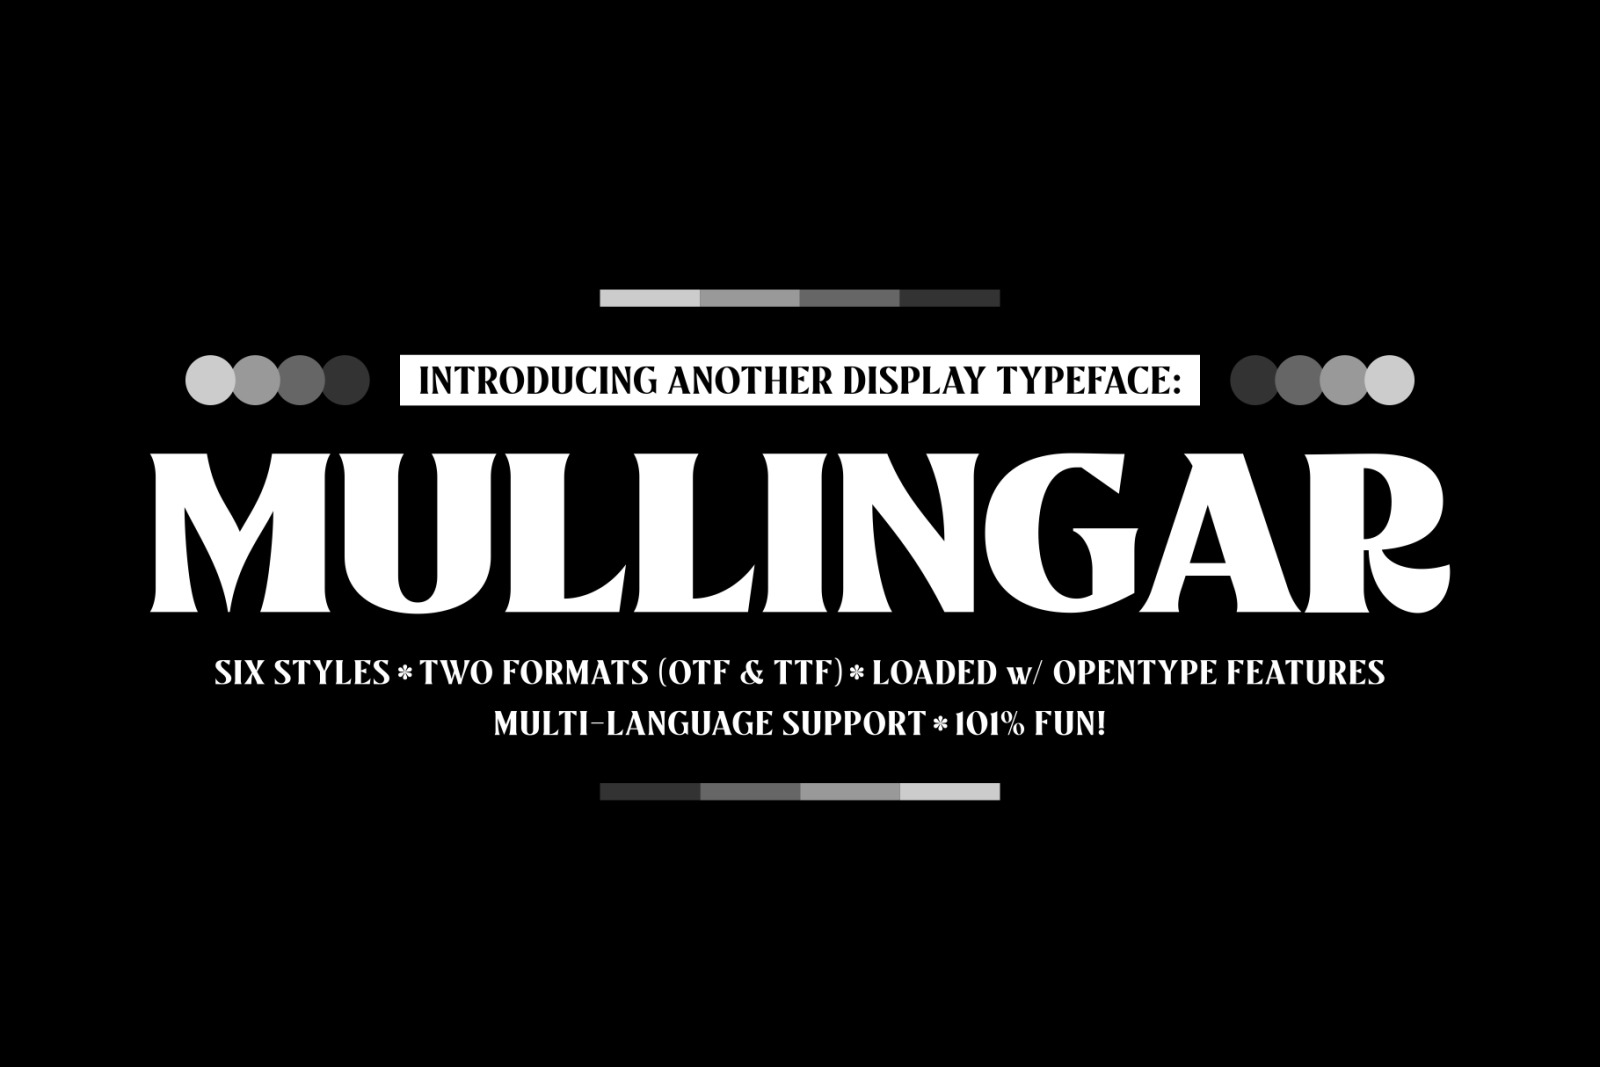 Mullingar Display Typeface